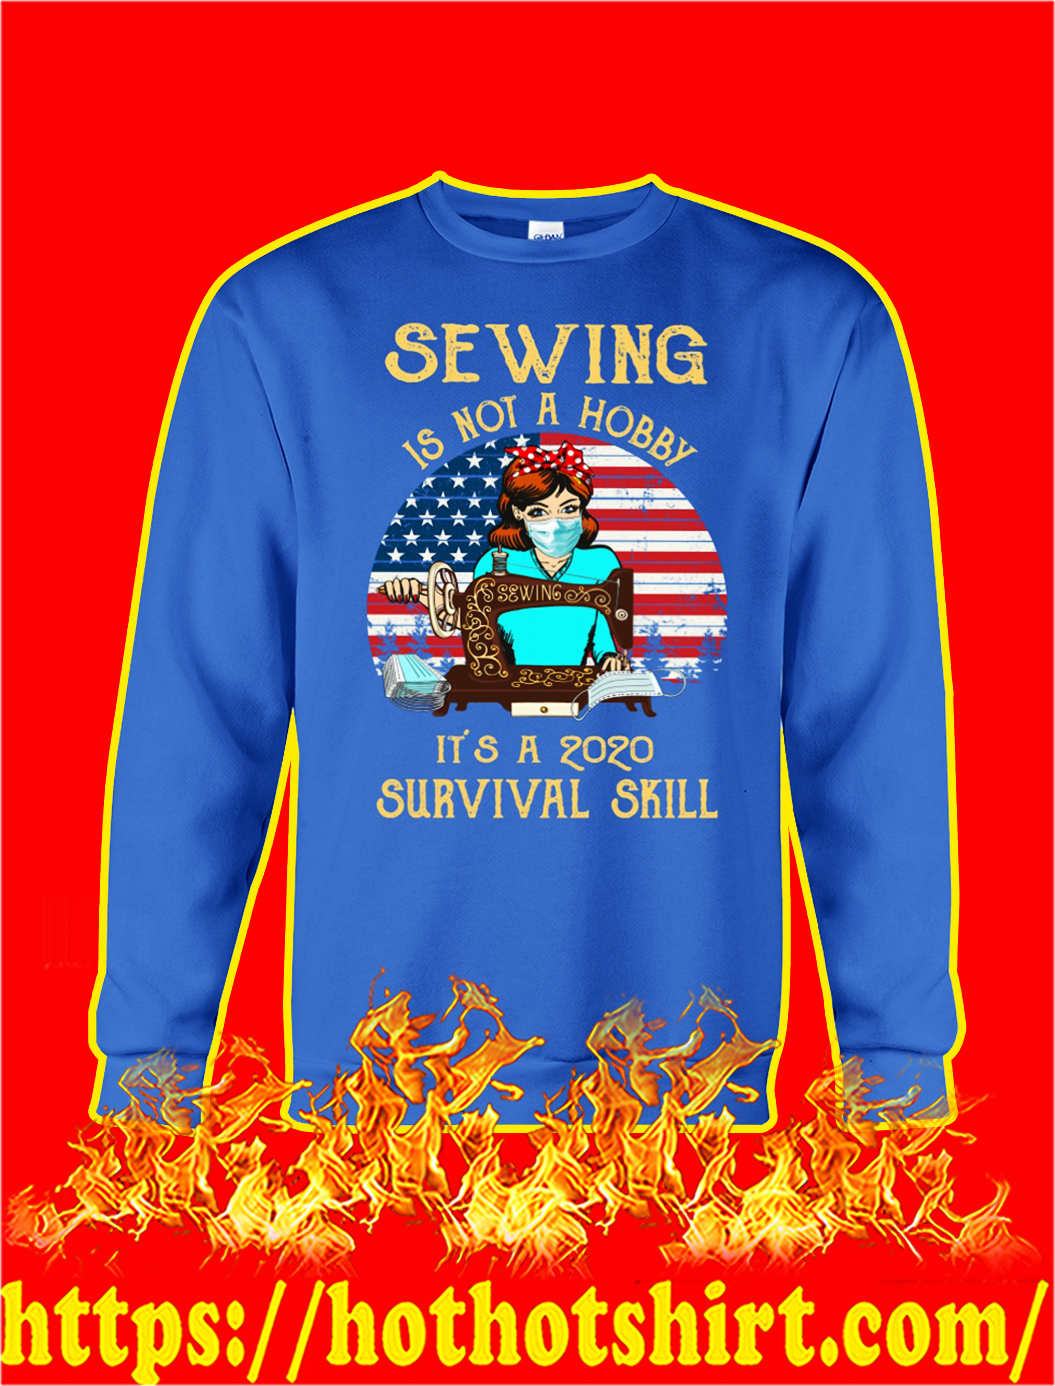 Sewing is not a hobby it's a 2020 survival skill sweatshirt